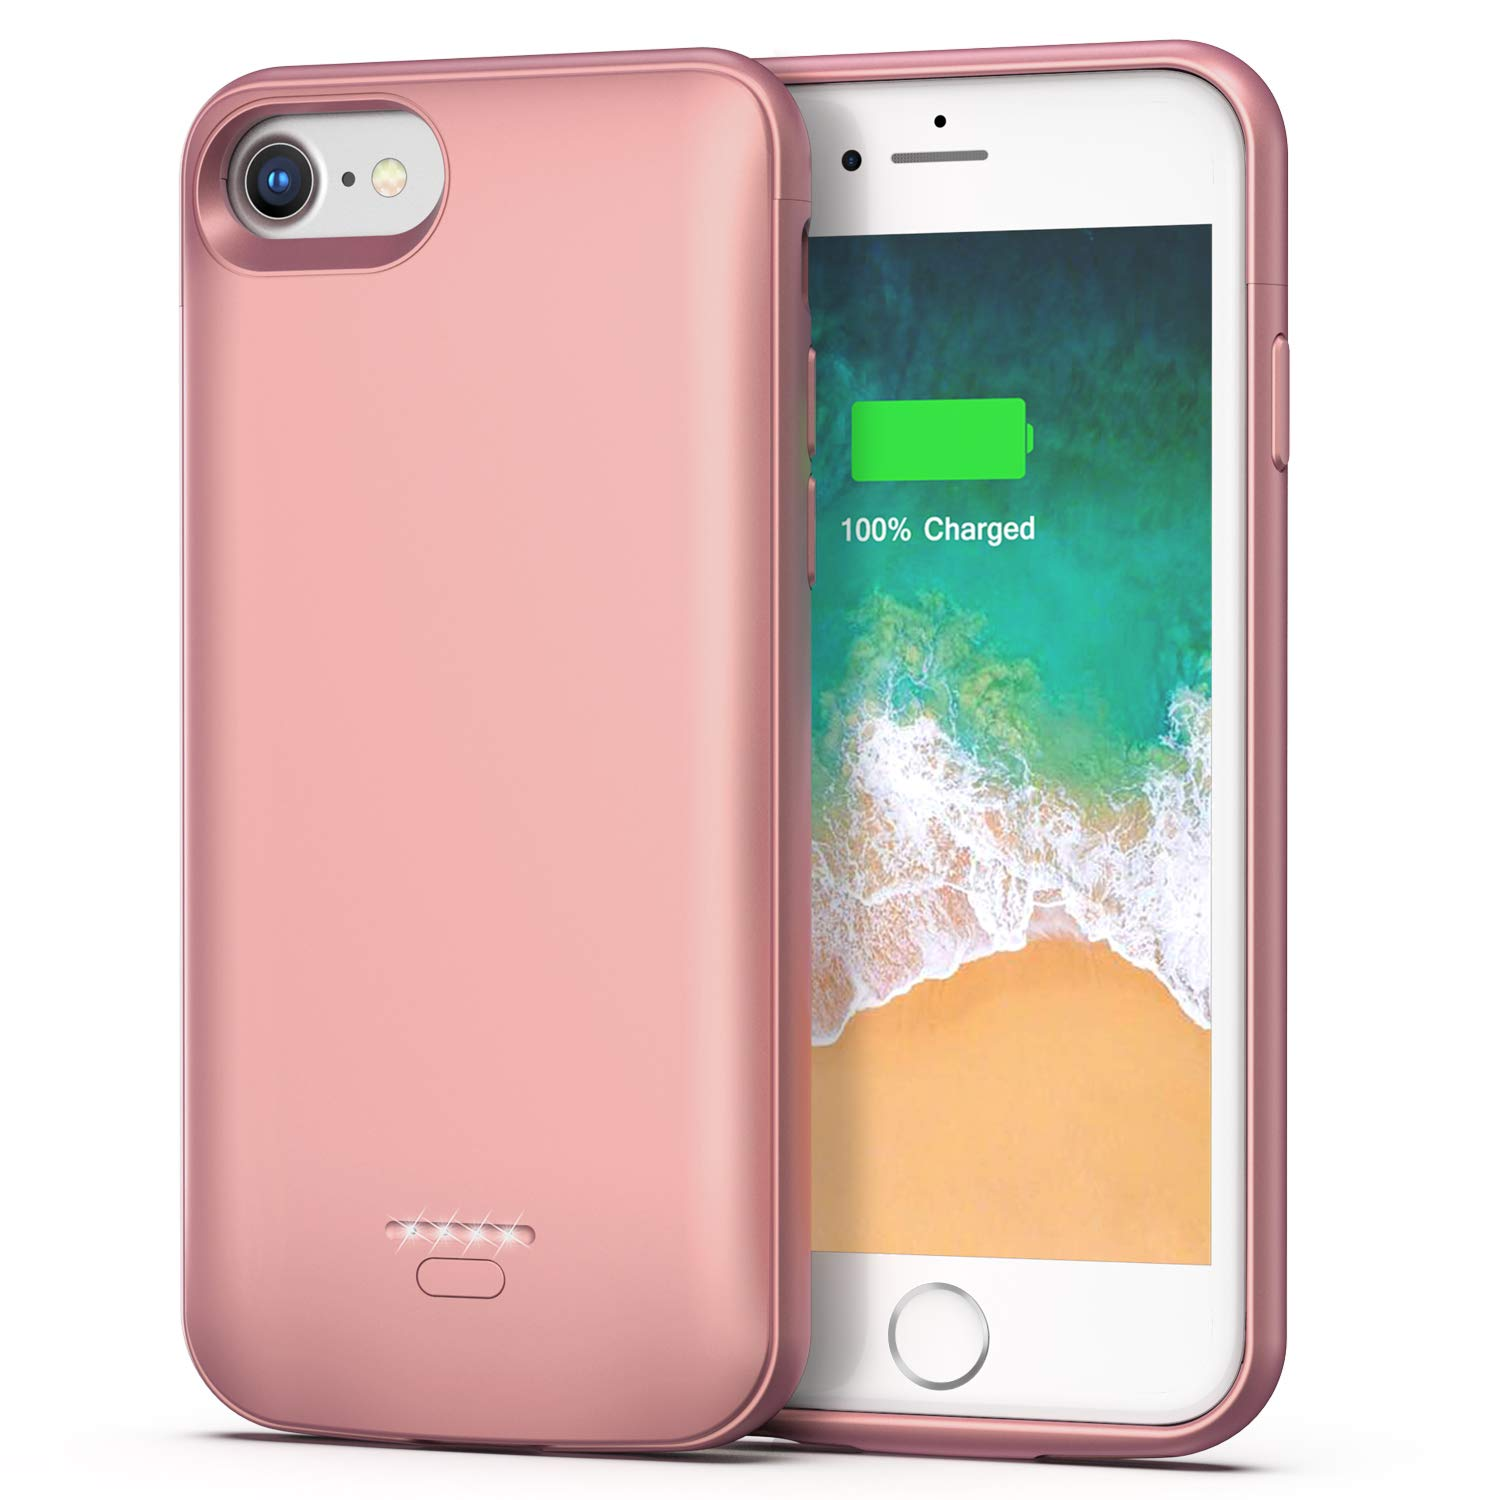 iPhone 6 6s Battery Case, 4000mAh Portable Protective  Charging Case for iPhone 6 6s(4.7 inch) Extended Battery Charger Case (Rose Gold) Smiphee